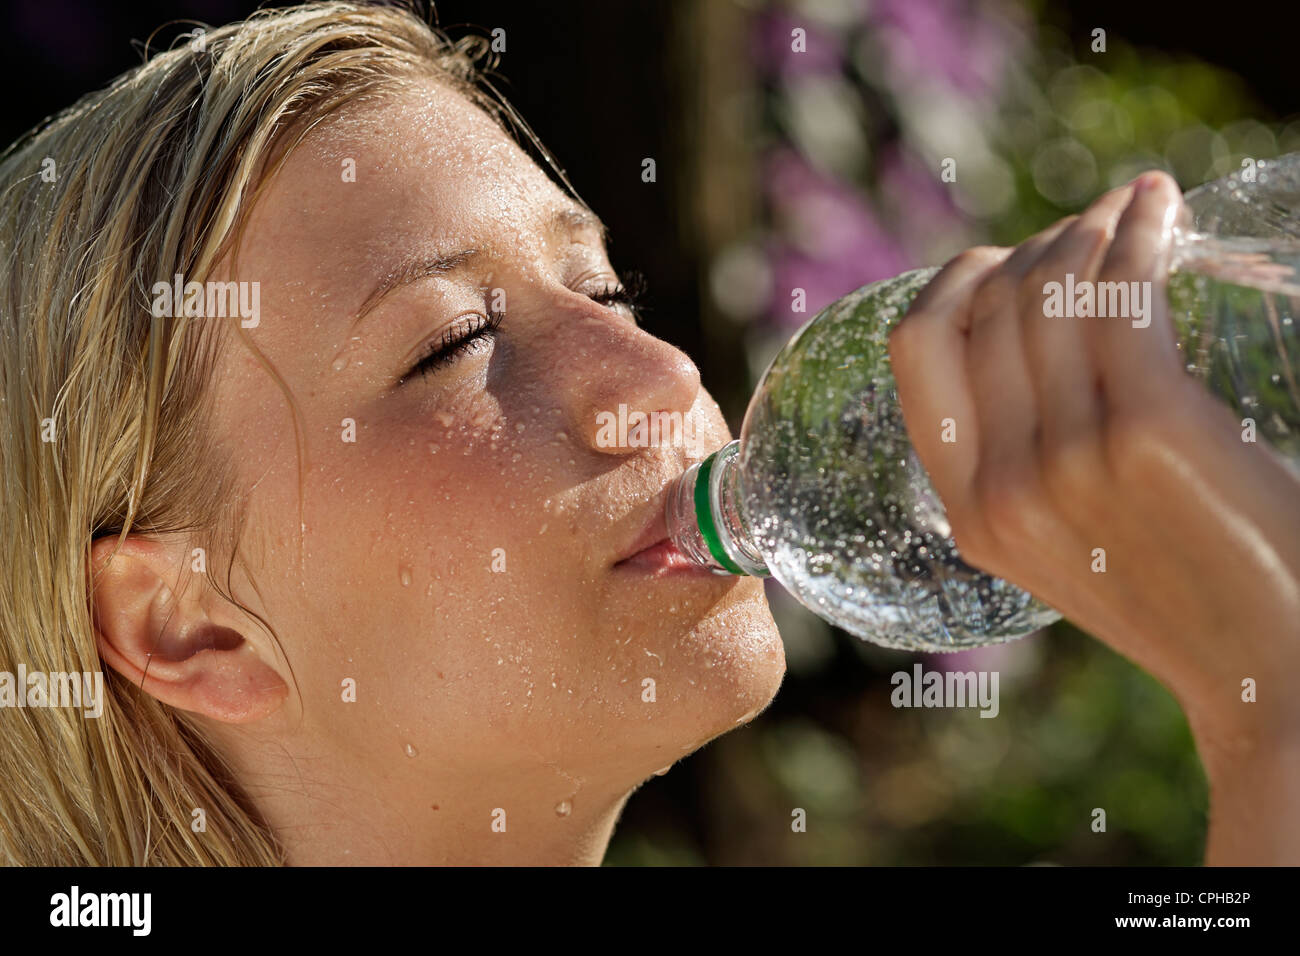 Pretty young girl drinking water - Stock Image